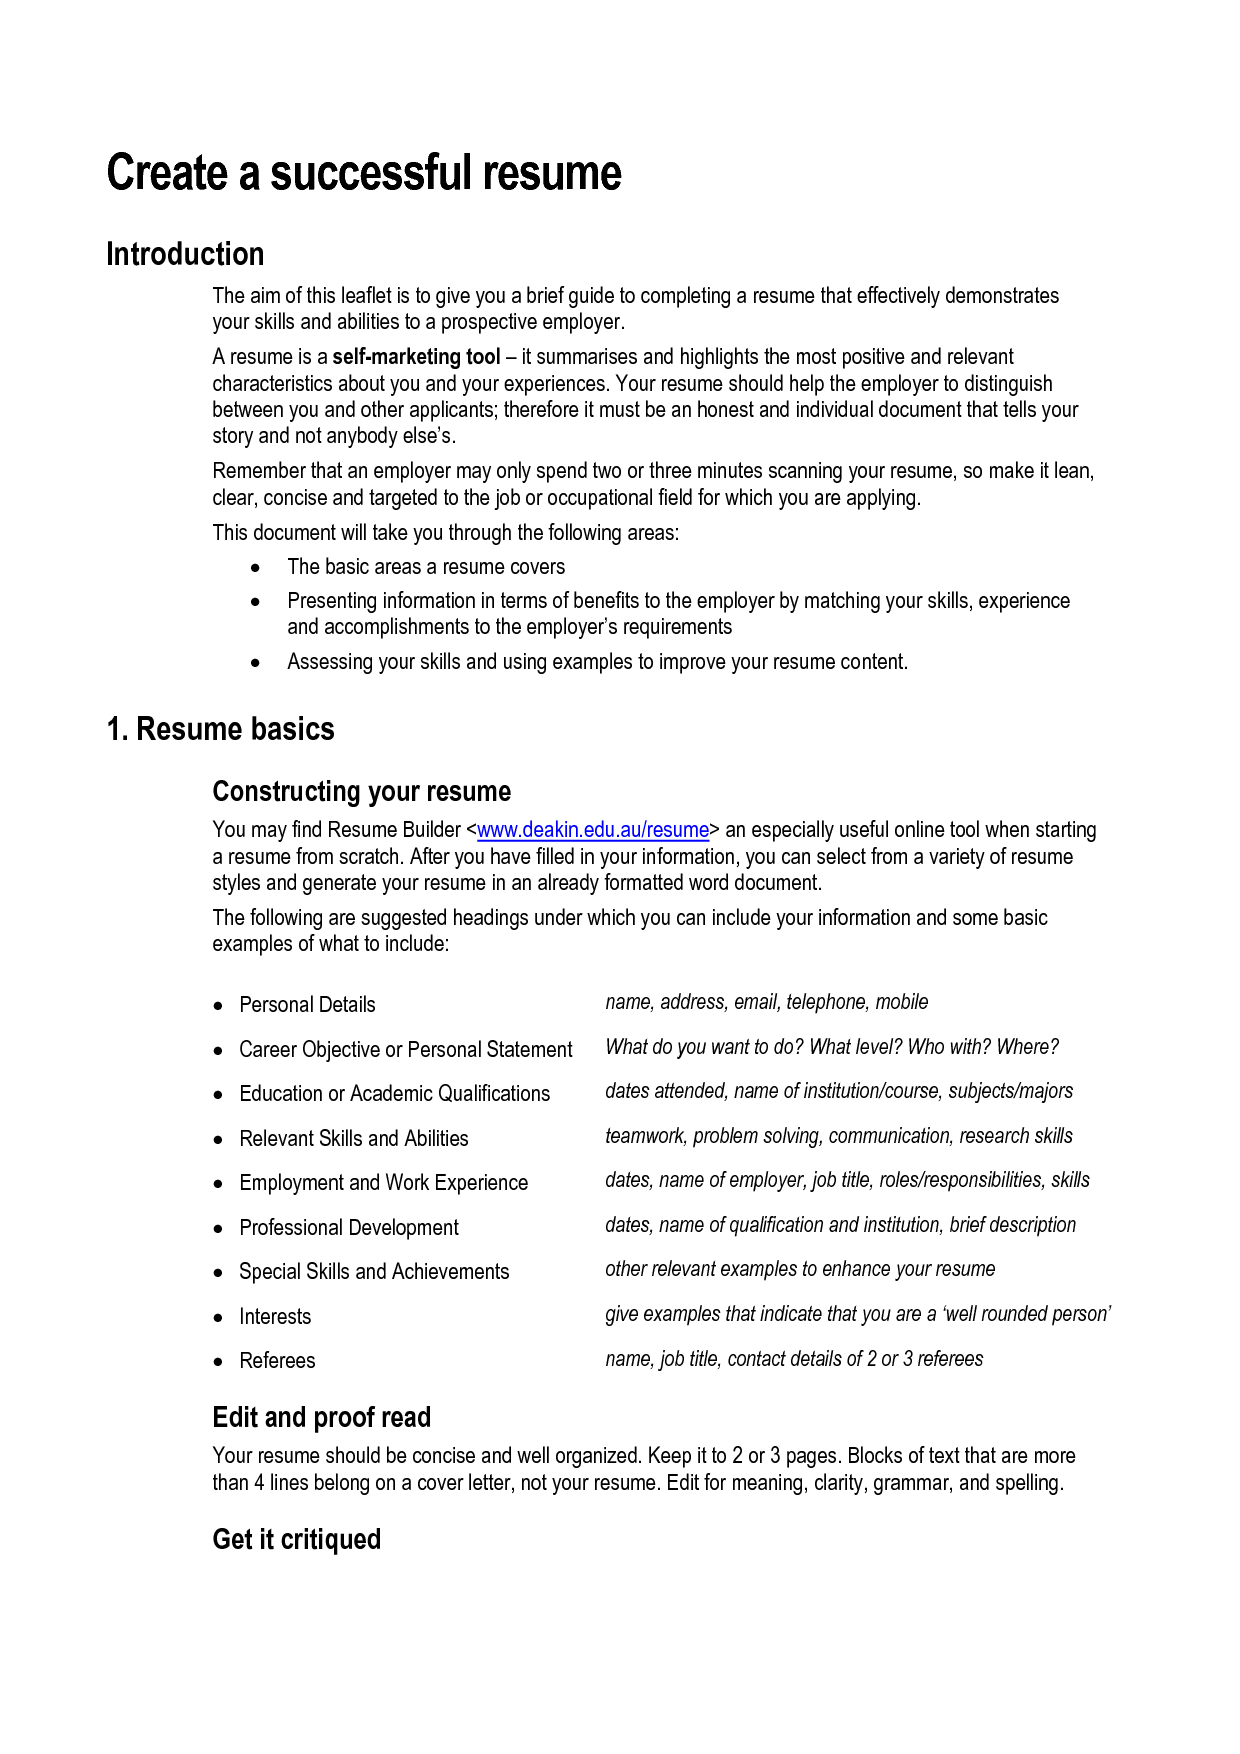 Resume Objective For Retail Resume Skills And Ability  How To Create A Resume  Doc  Resumes